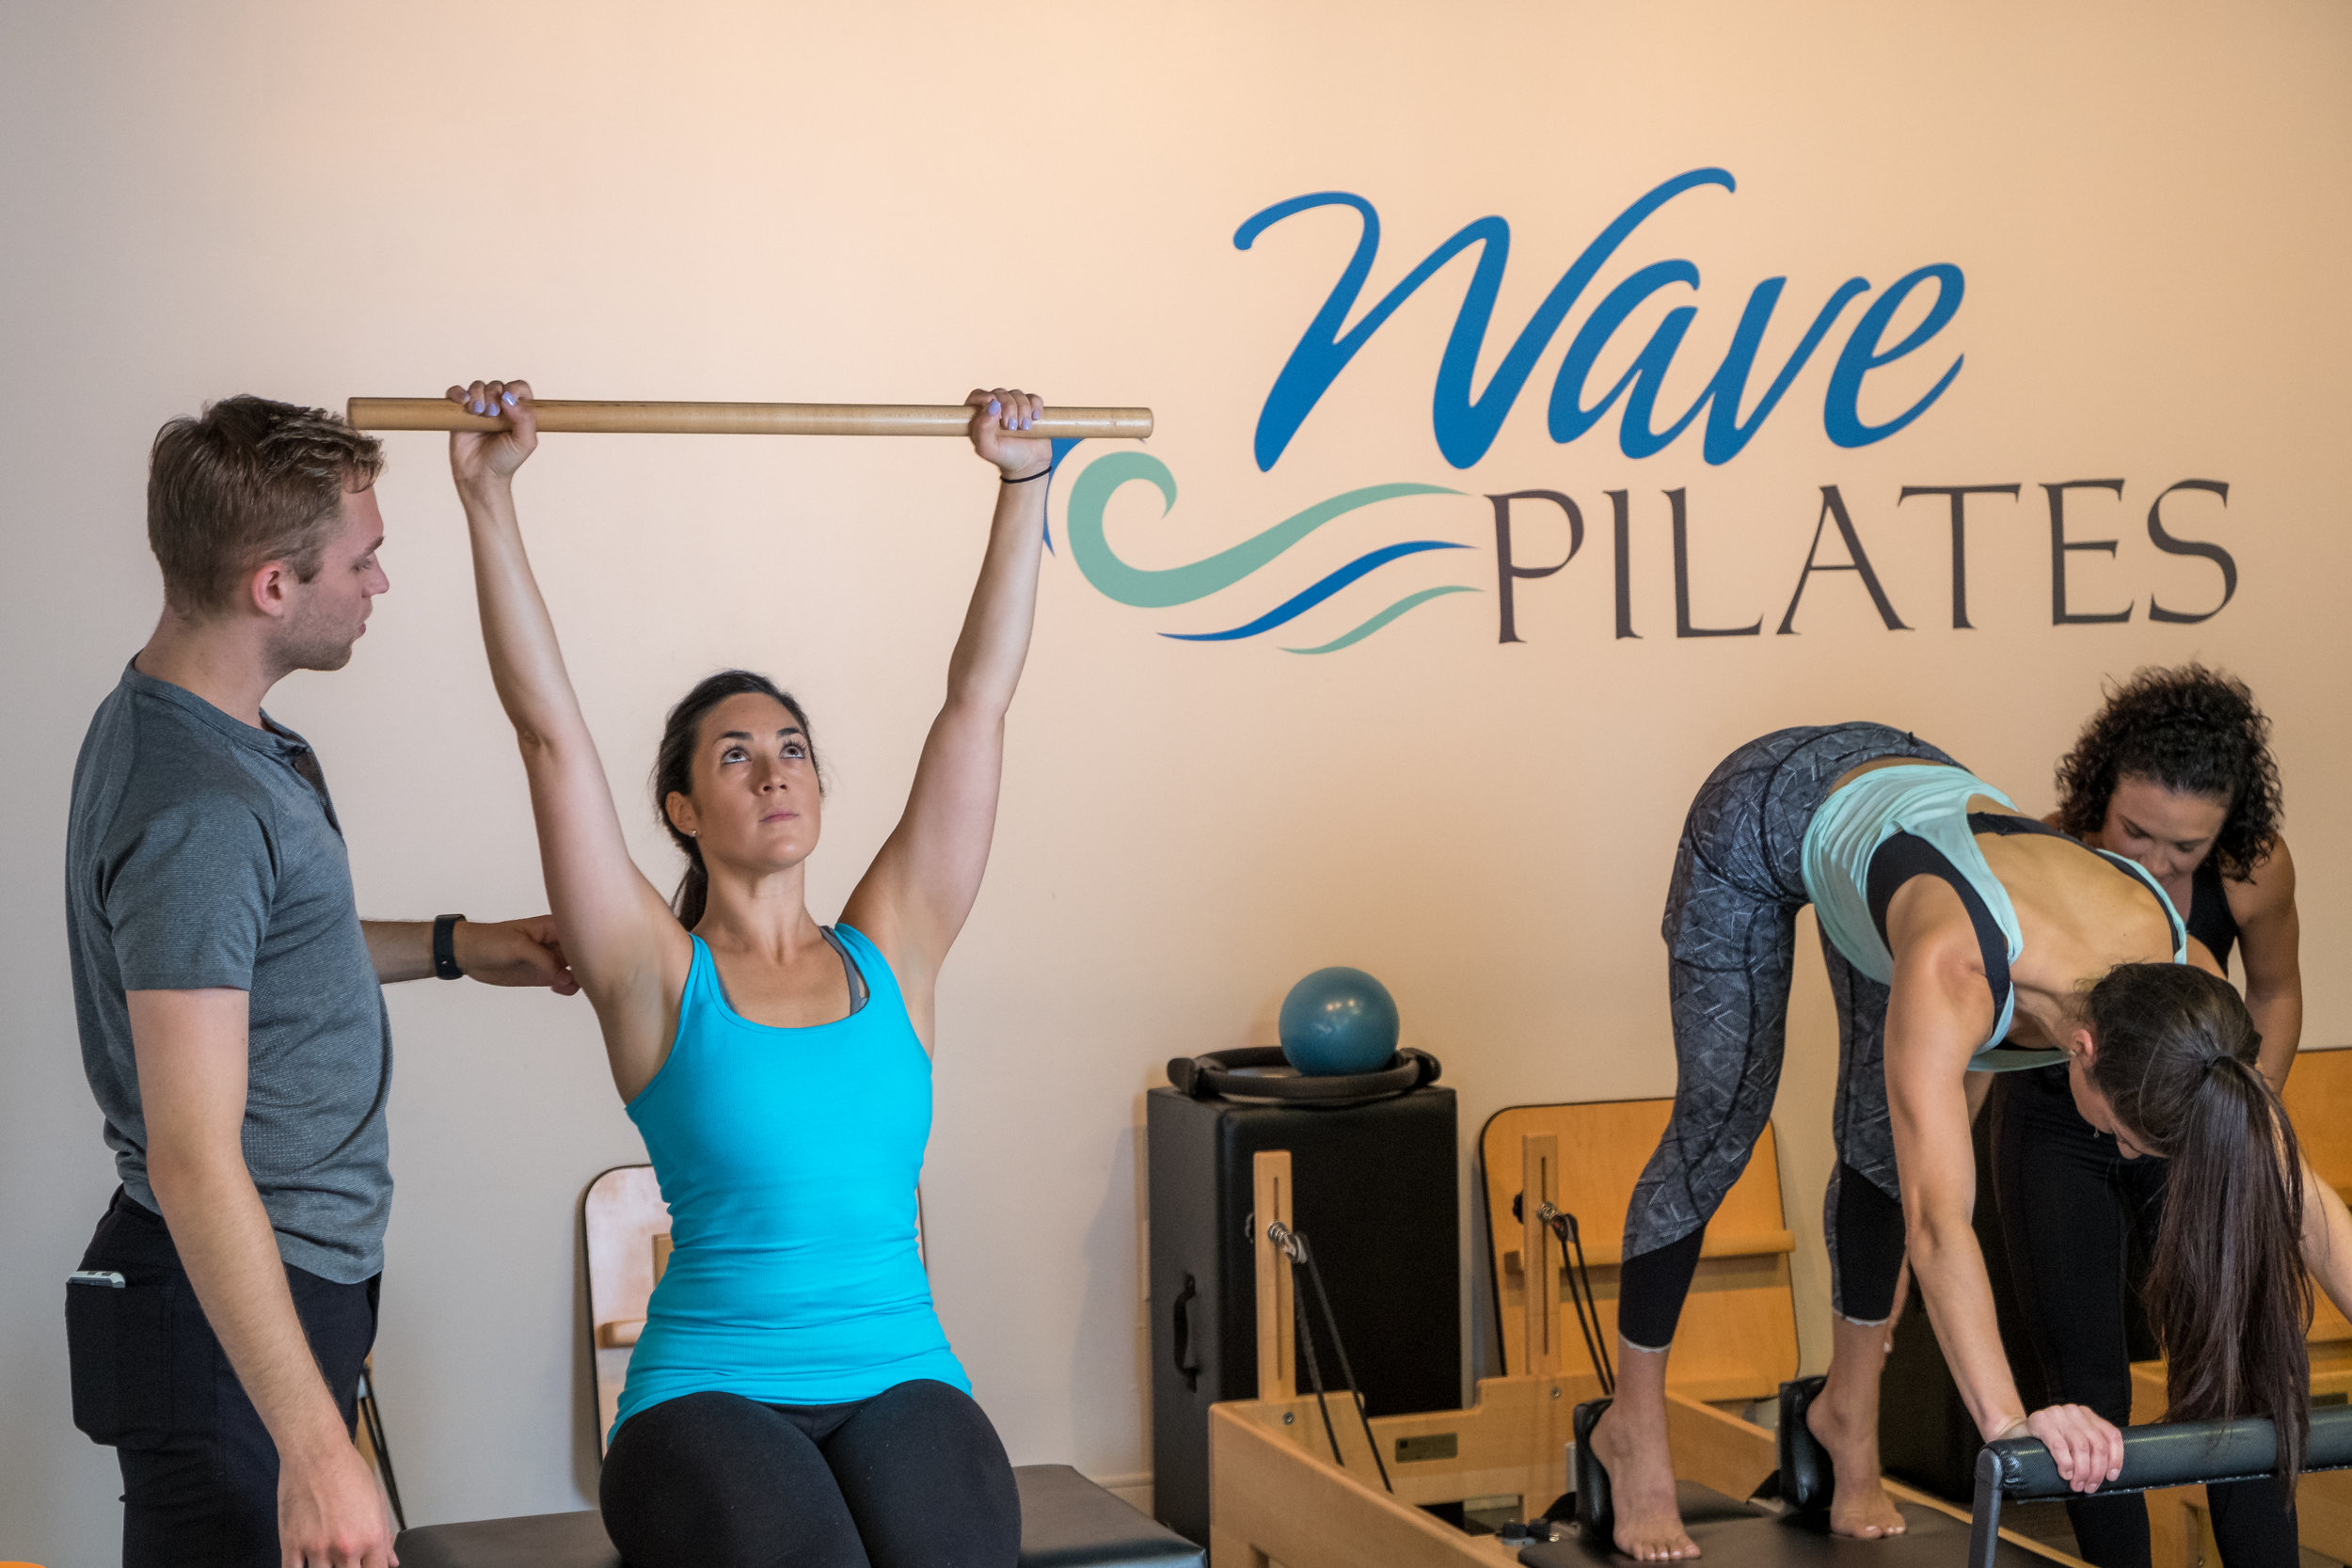 What is Pilates?  - Pilates is a system of mind-body exercise evolved from the principles of Joseph Pilates. Focusing on the core muscles, Pilates exercises teach proper breath patterns and alignment of the spine, which strengthen the deep torso muscles to help alleviate back pain and prevent injury as well as increase an individual's flexibility and strength. It is a challenging, yet functional form of exercise used to enhance lifelong well-being. Pilates just might be the anti-aging tool you have been searching for!With a workout such as Pilates, you can be sure that you will not only have a flat tummy, but you will completely transform your body into a long, lean and muscular build. It will give you a sense of awareness that can be taken and used in everyday life, whether you are engaging your abdominals while standing in line at the grocery store or practicing your breathing patterns as you sit in traffic. Pilates is not just a workout, it truly is a life-changing practice.